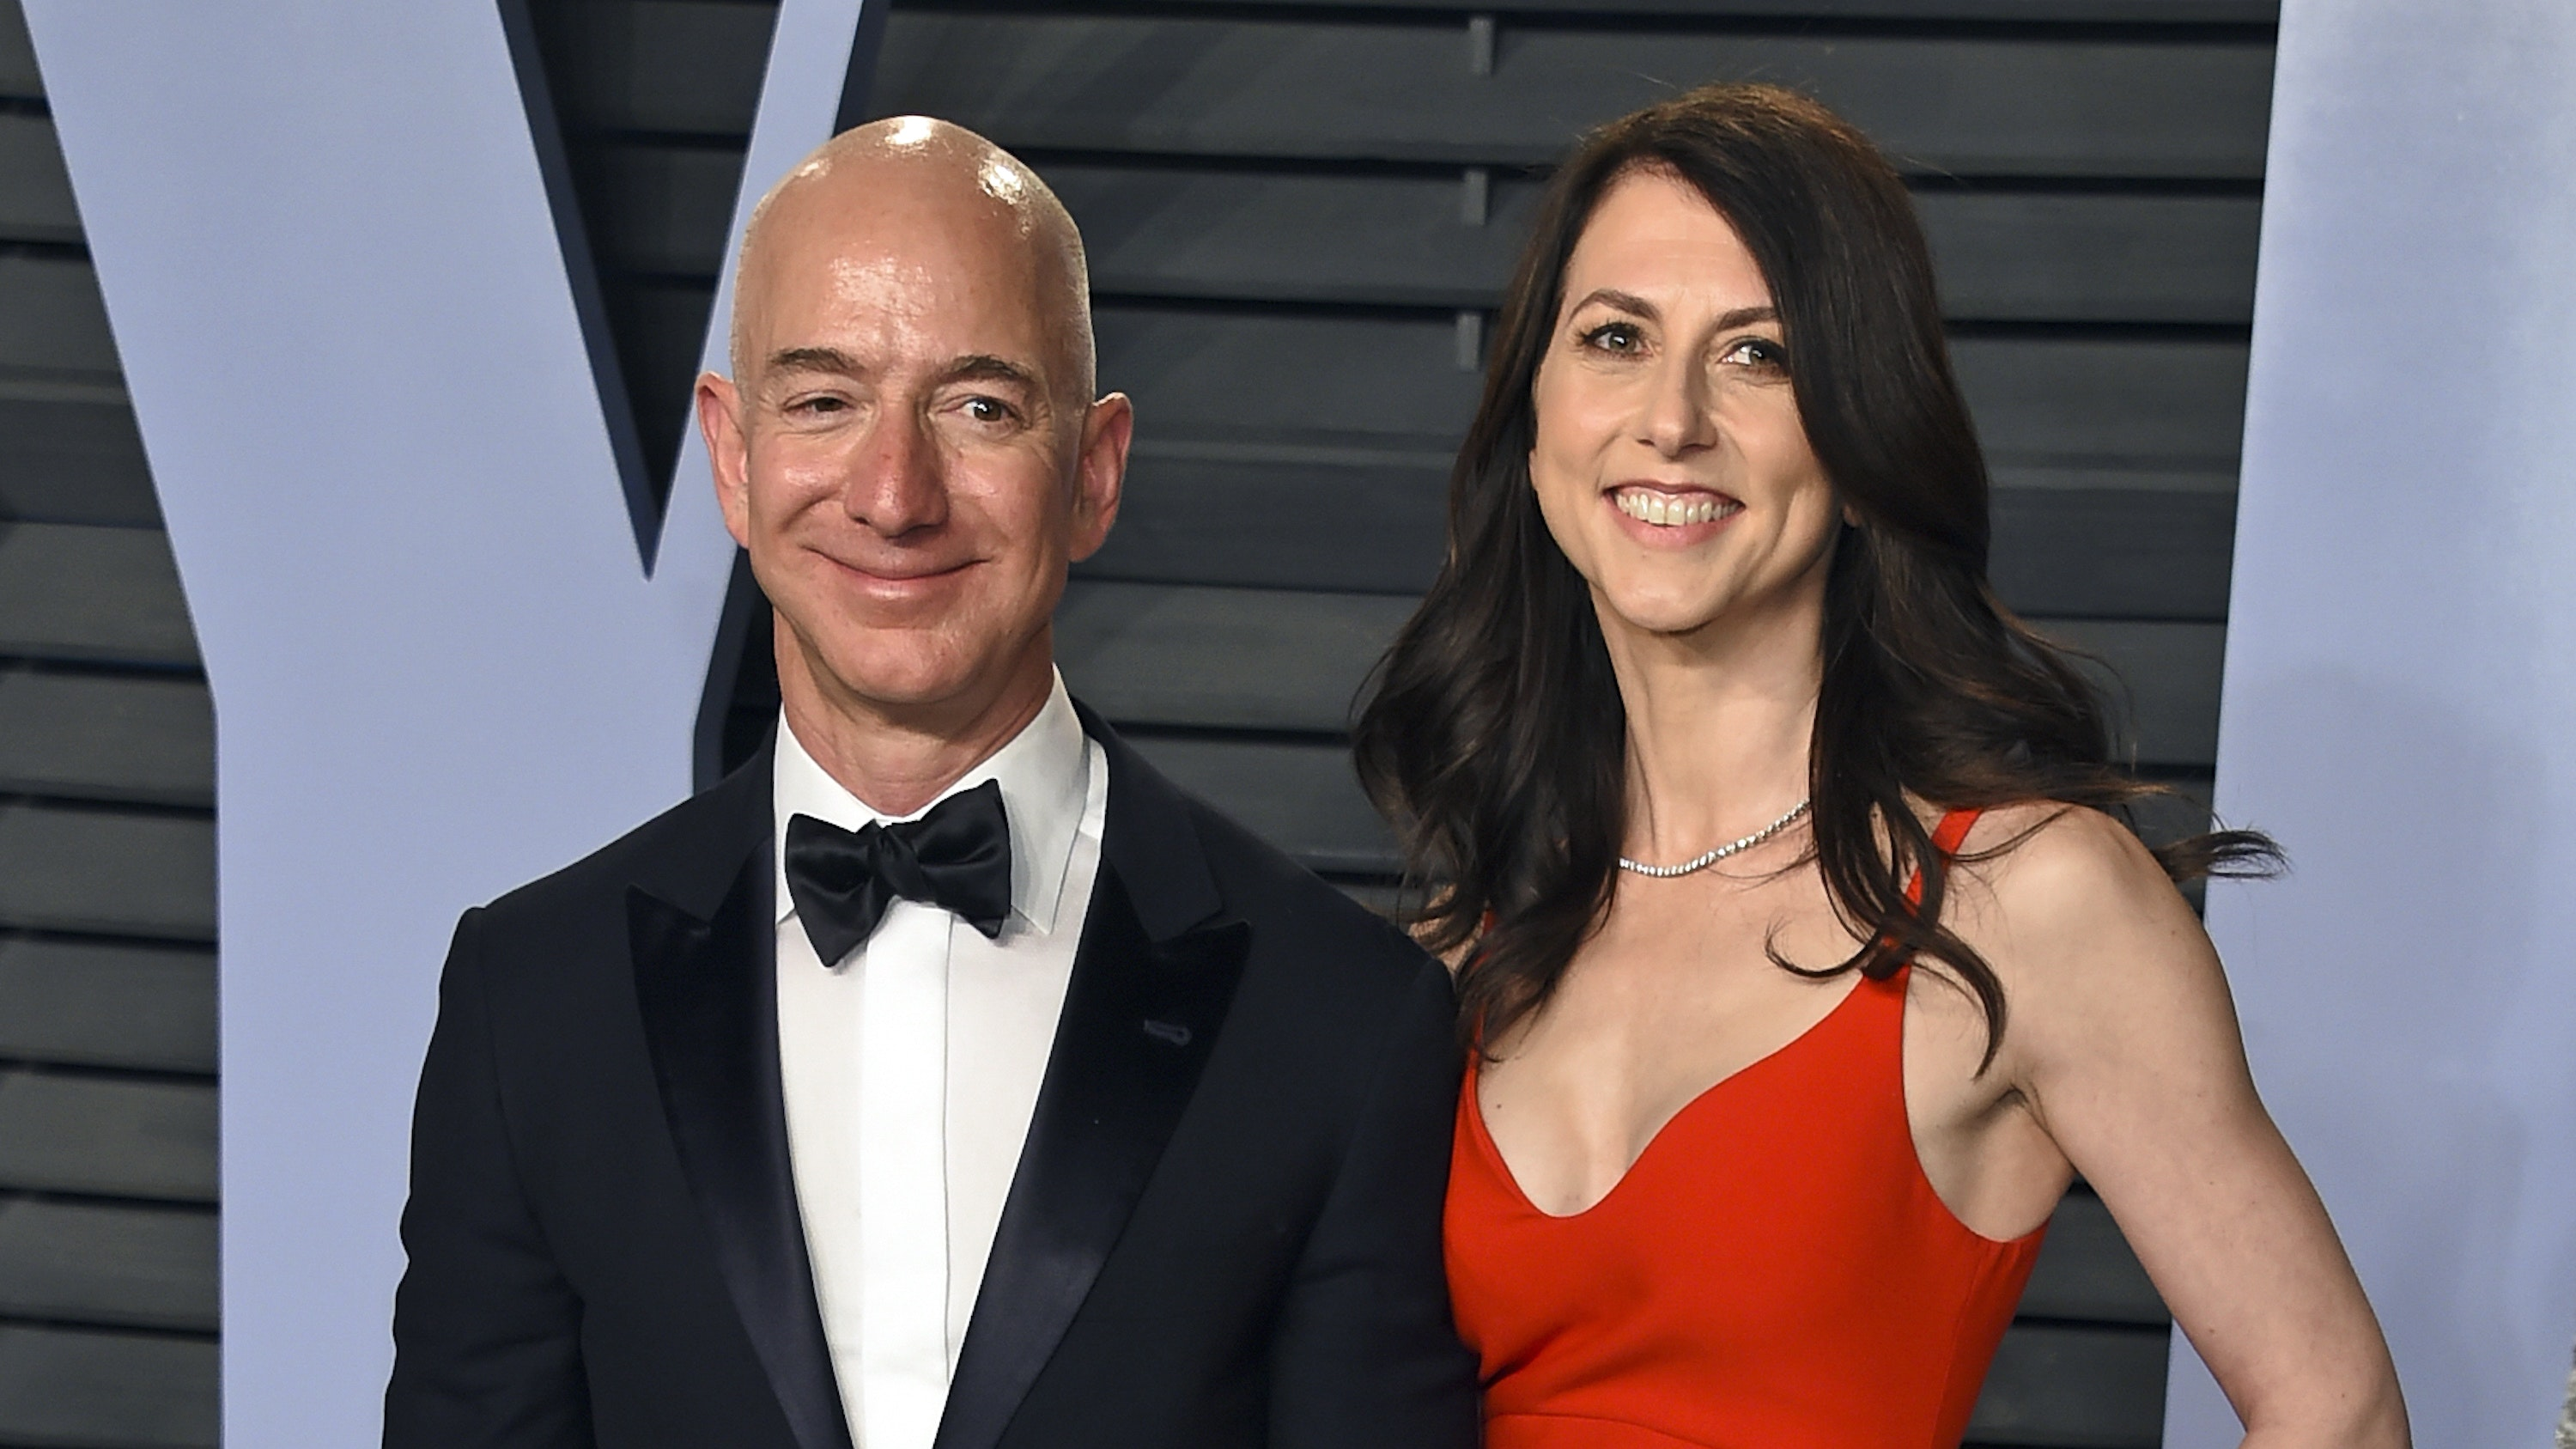 Amazon founder Jeff Bezos to divorce from wife after 25 ...